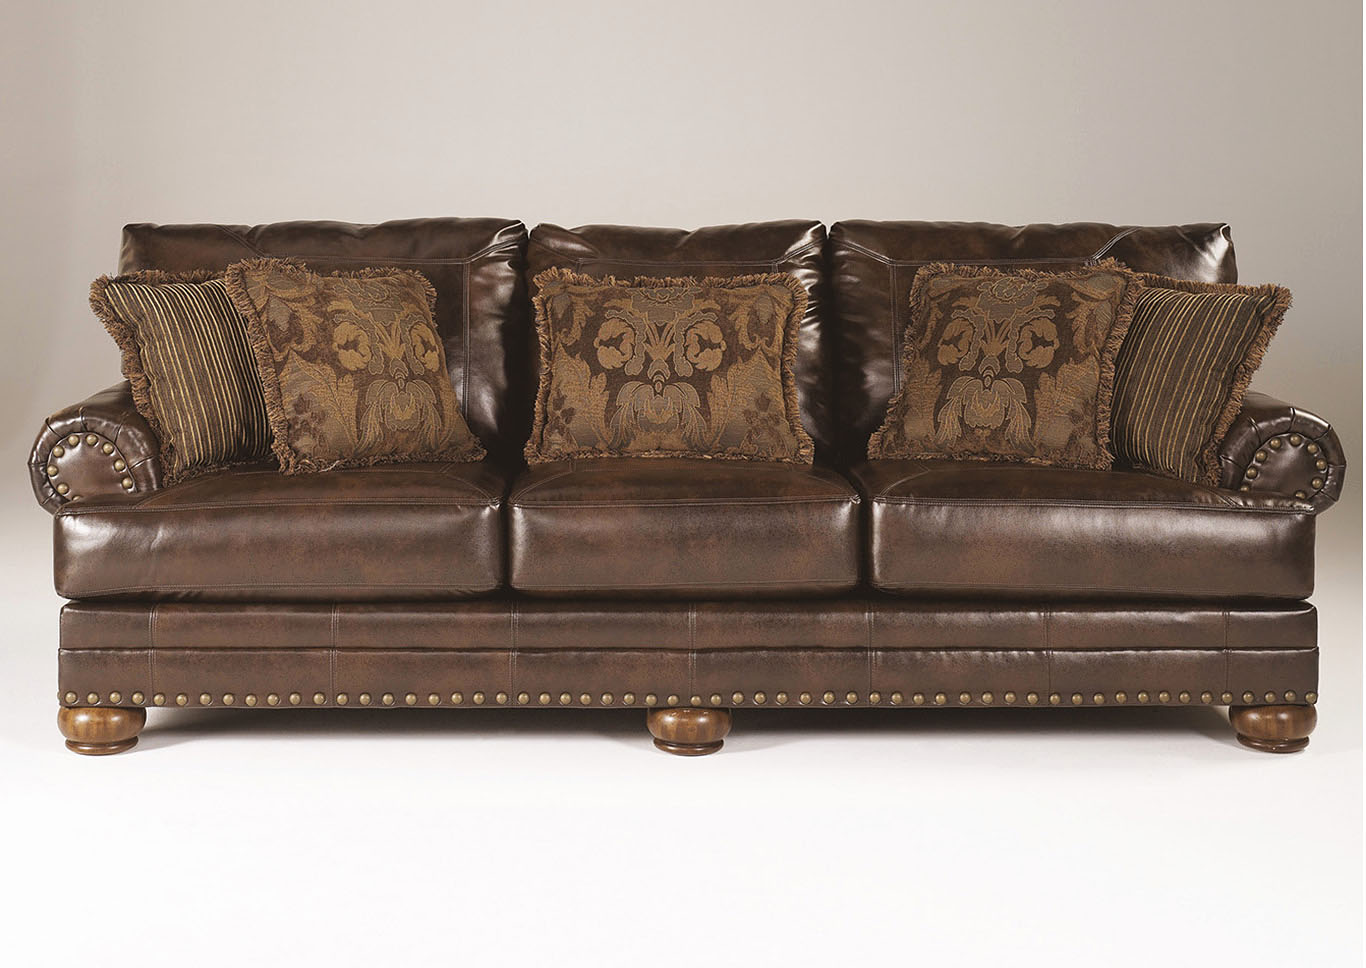 DuraBlend Antique Sofa,Signature Design By Ashley